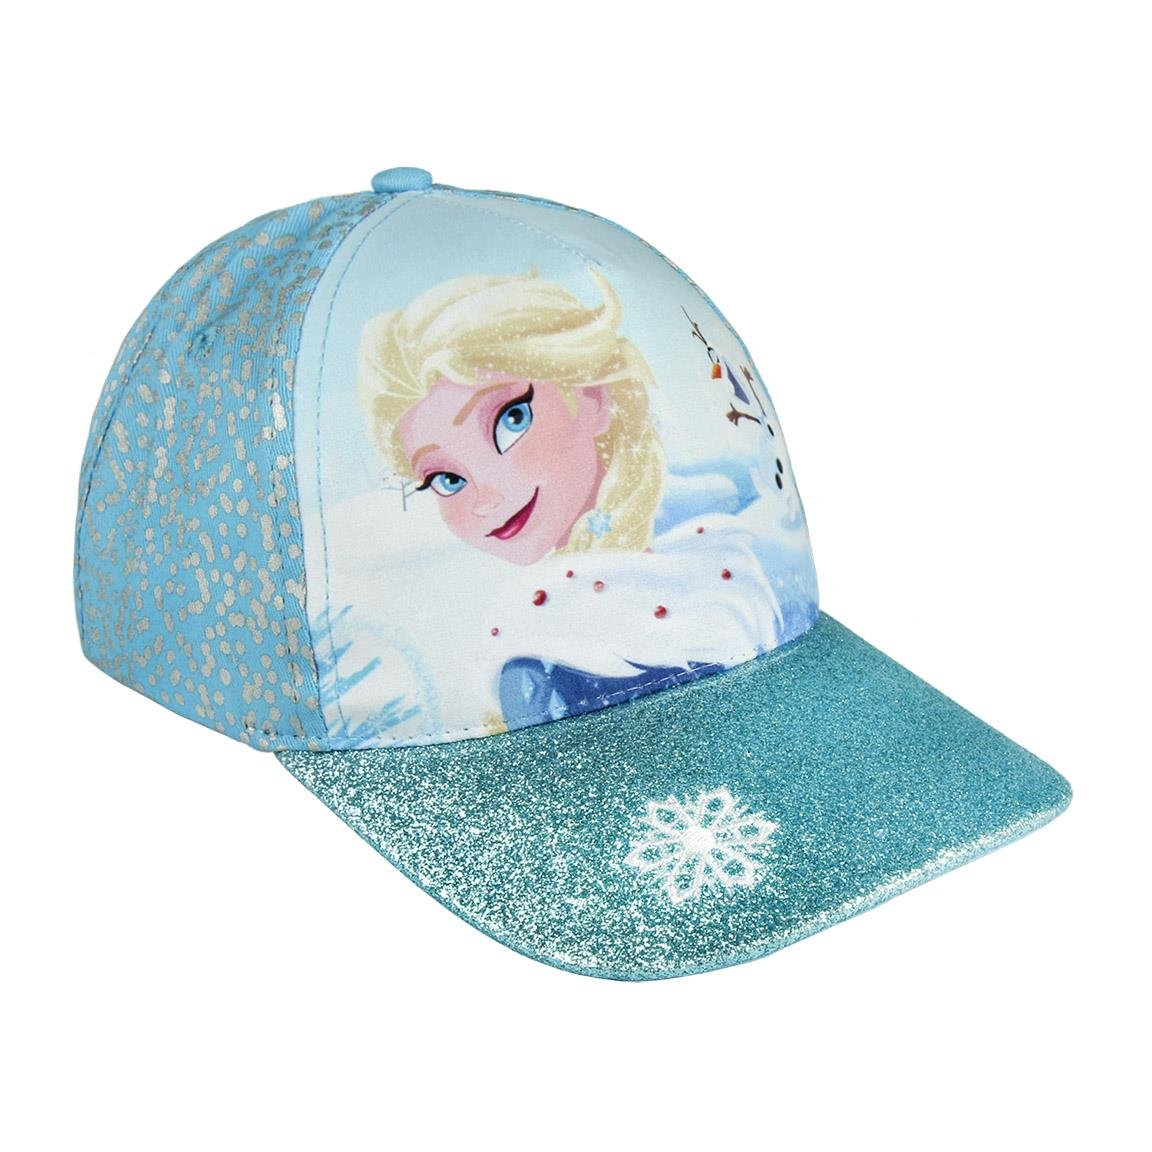 85af9ec6fb0 Disney frozen cap cotton glitter girls toys games jpg 1152x1152 Frozen  disney hats